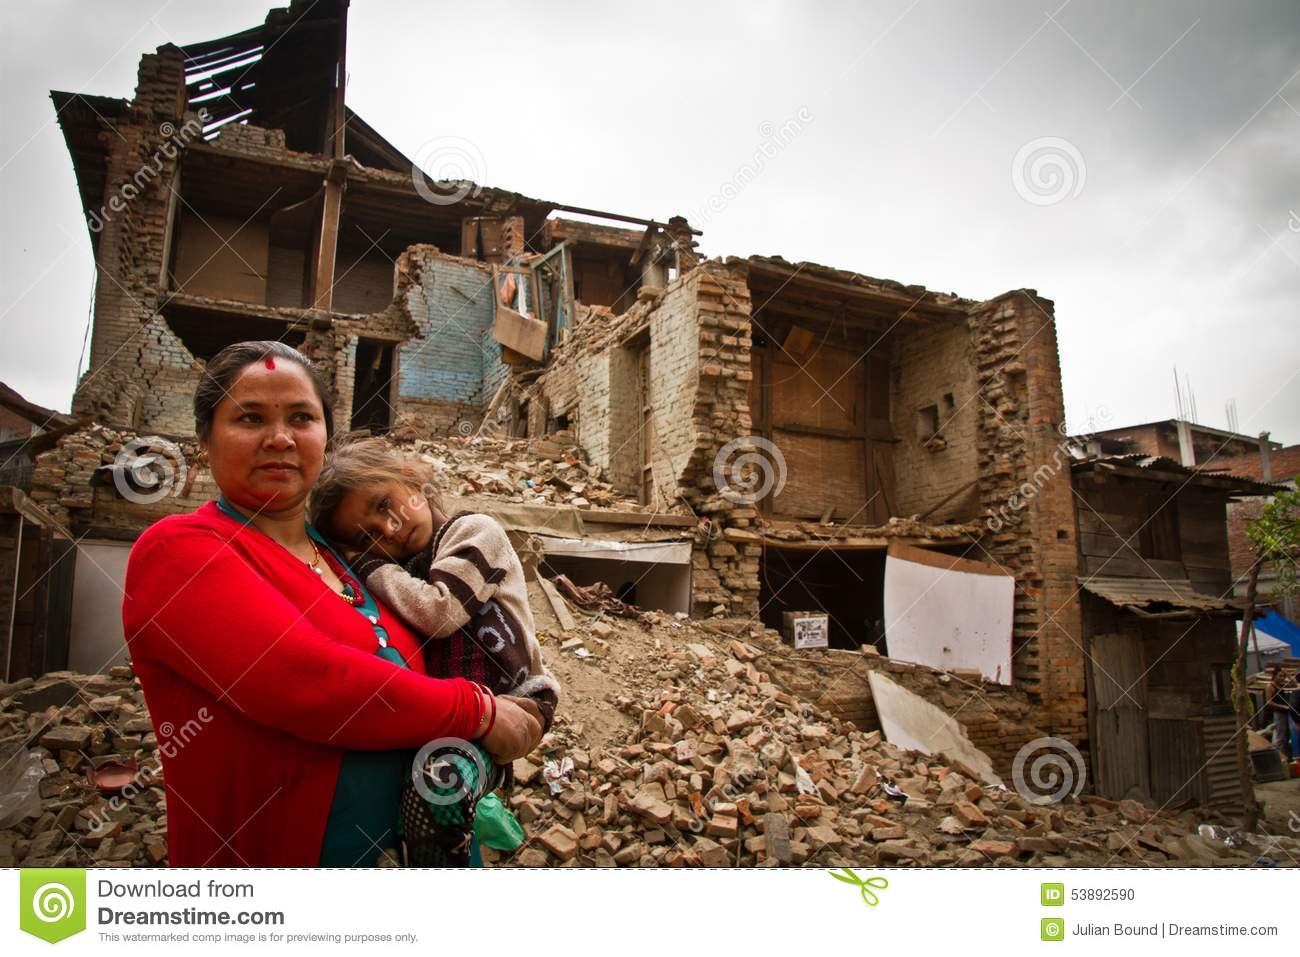 A mother and child outside an earthquake ruined house in Bhaktap